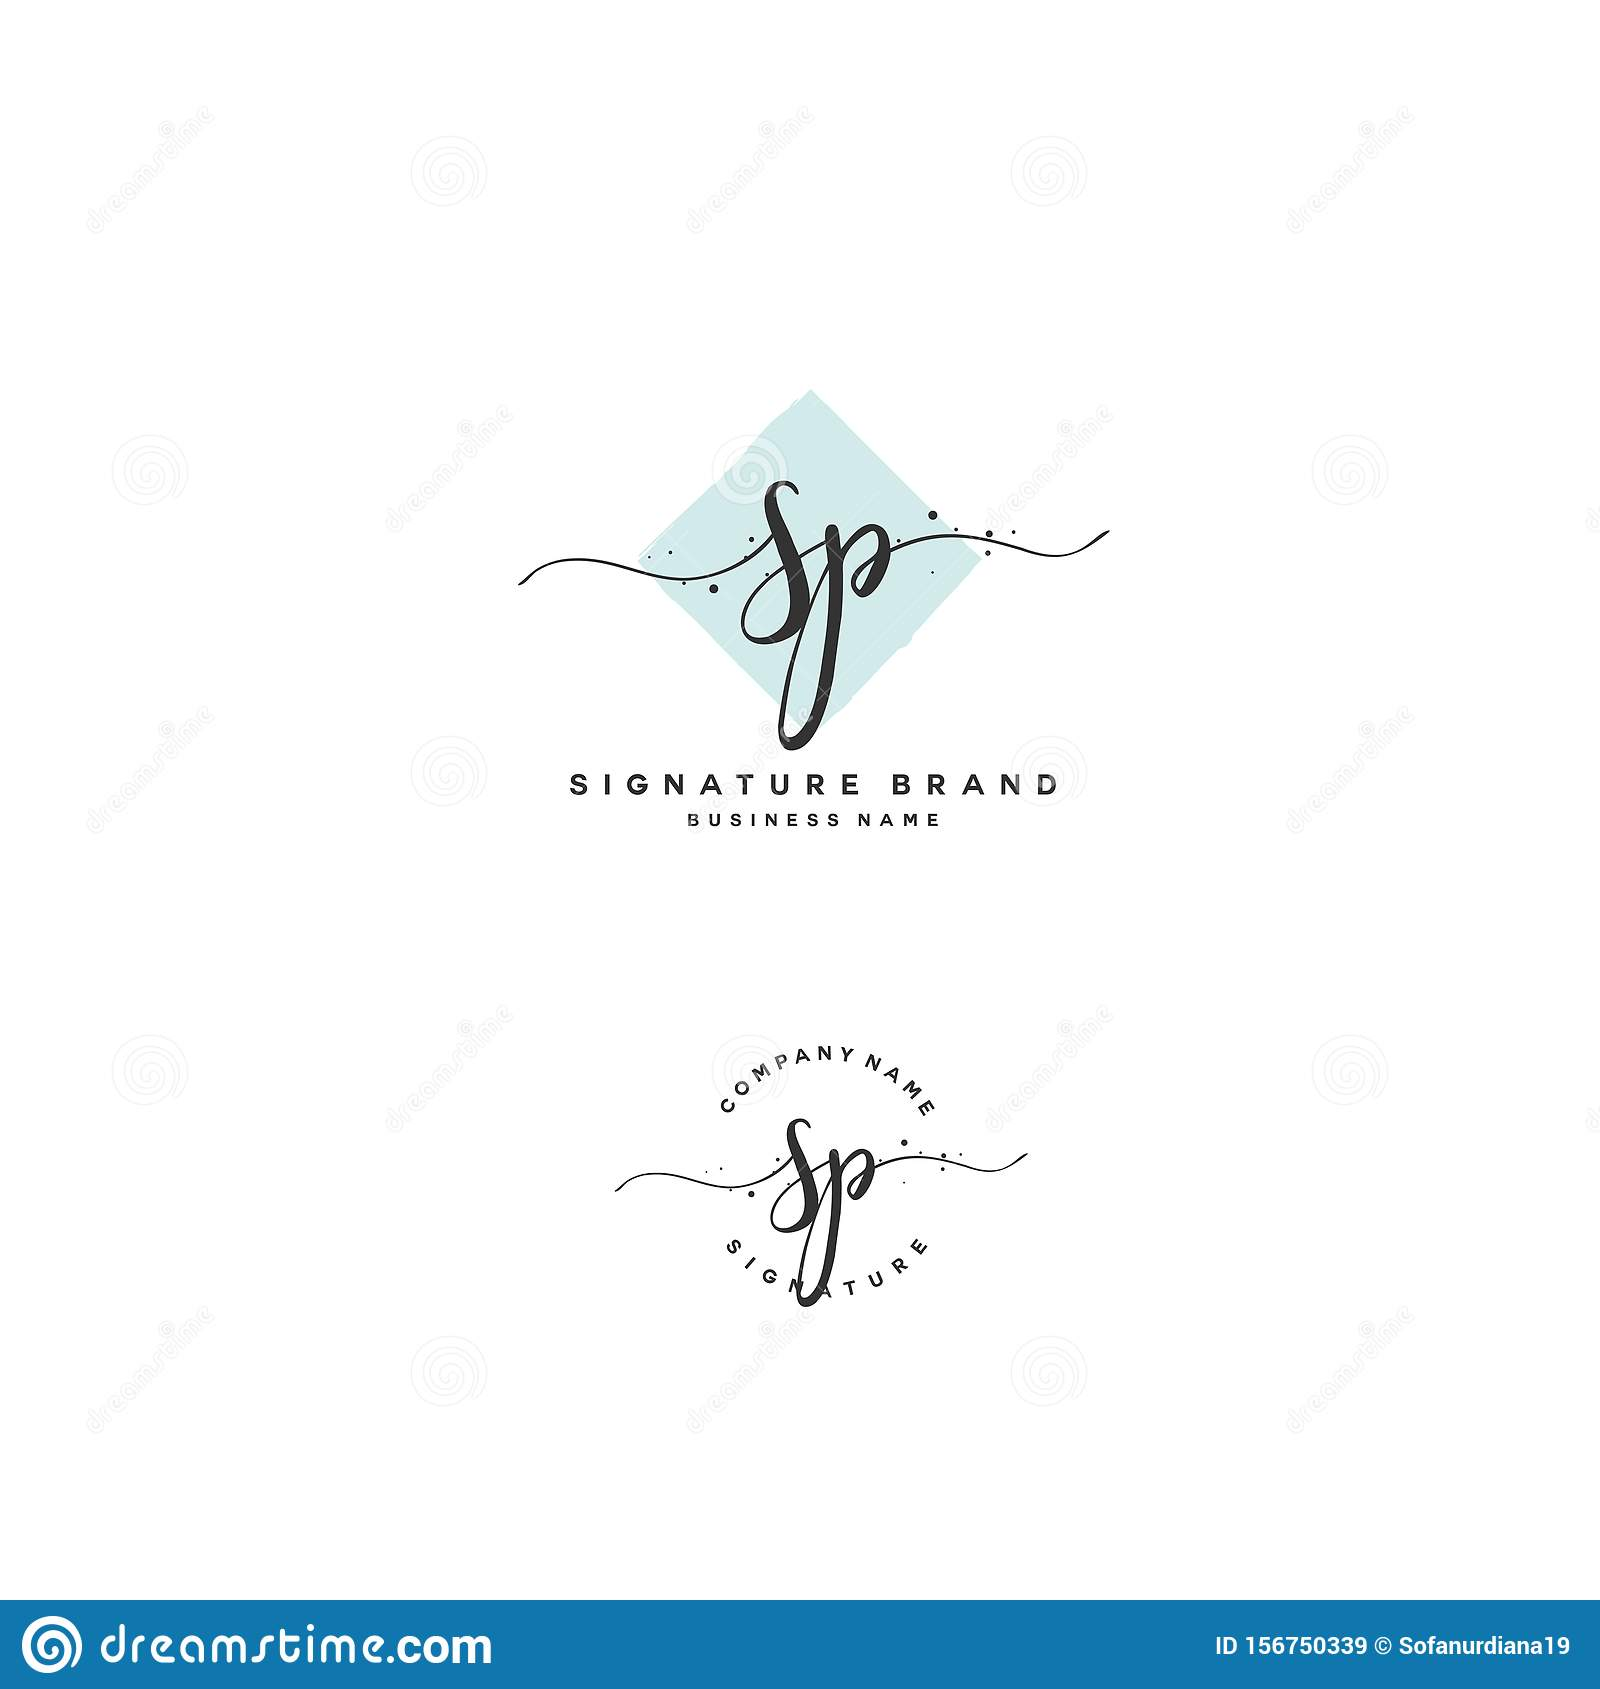 Signature Line In Letter from thumbs.dreamstime.com